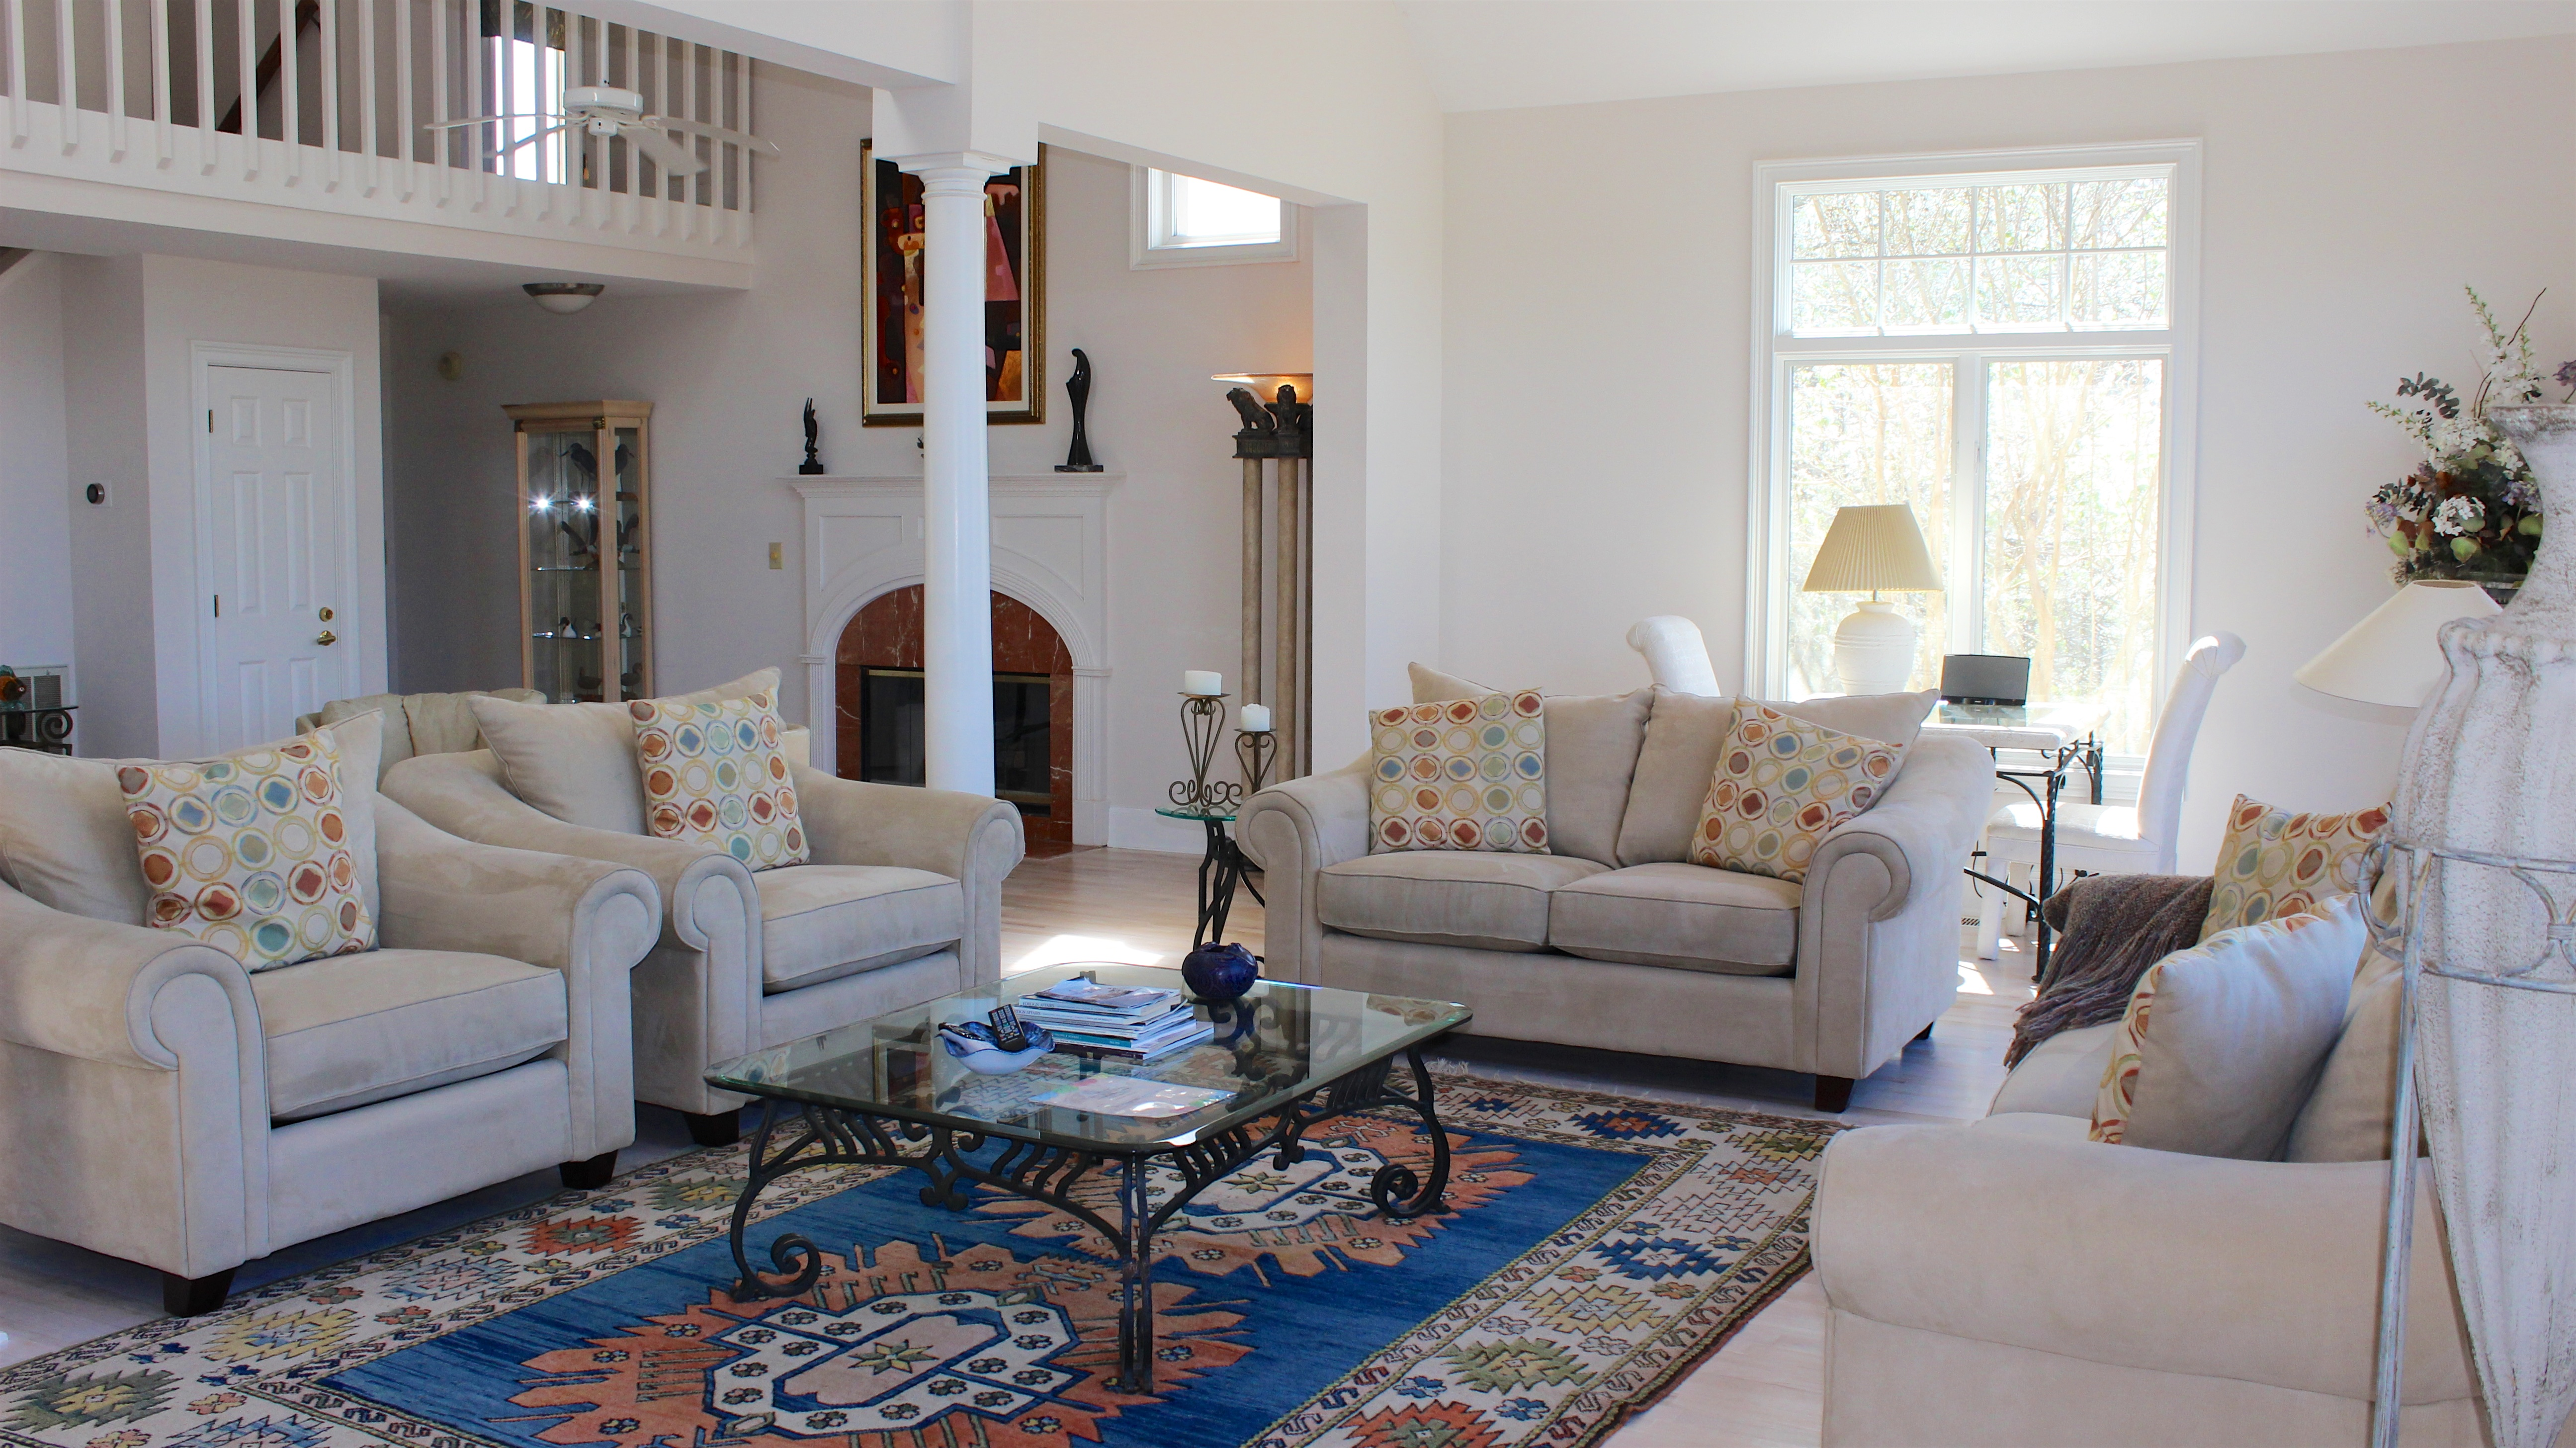 Cathedral ceilings and a balcony overlook the large living space.